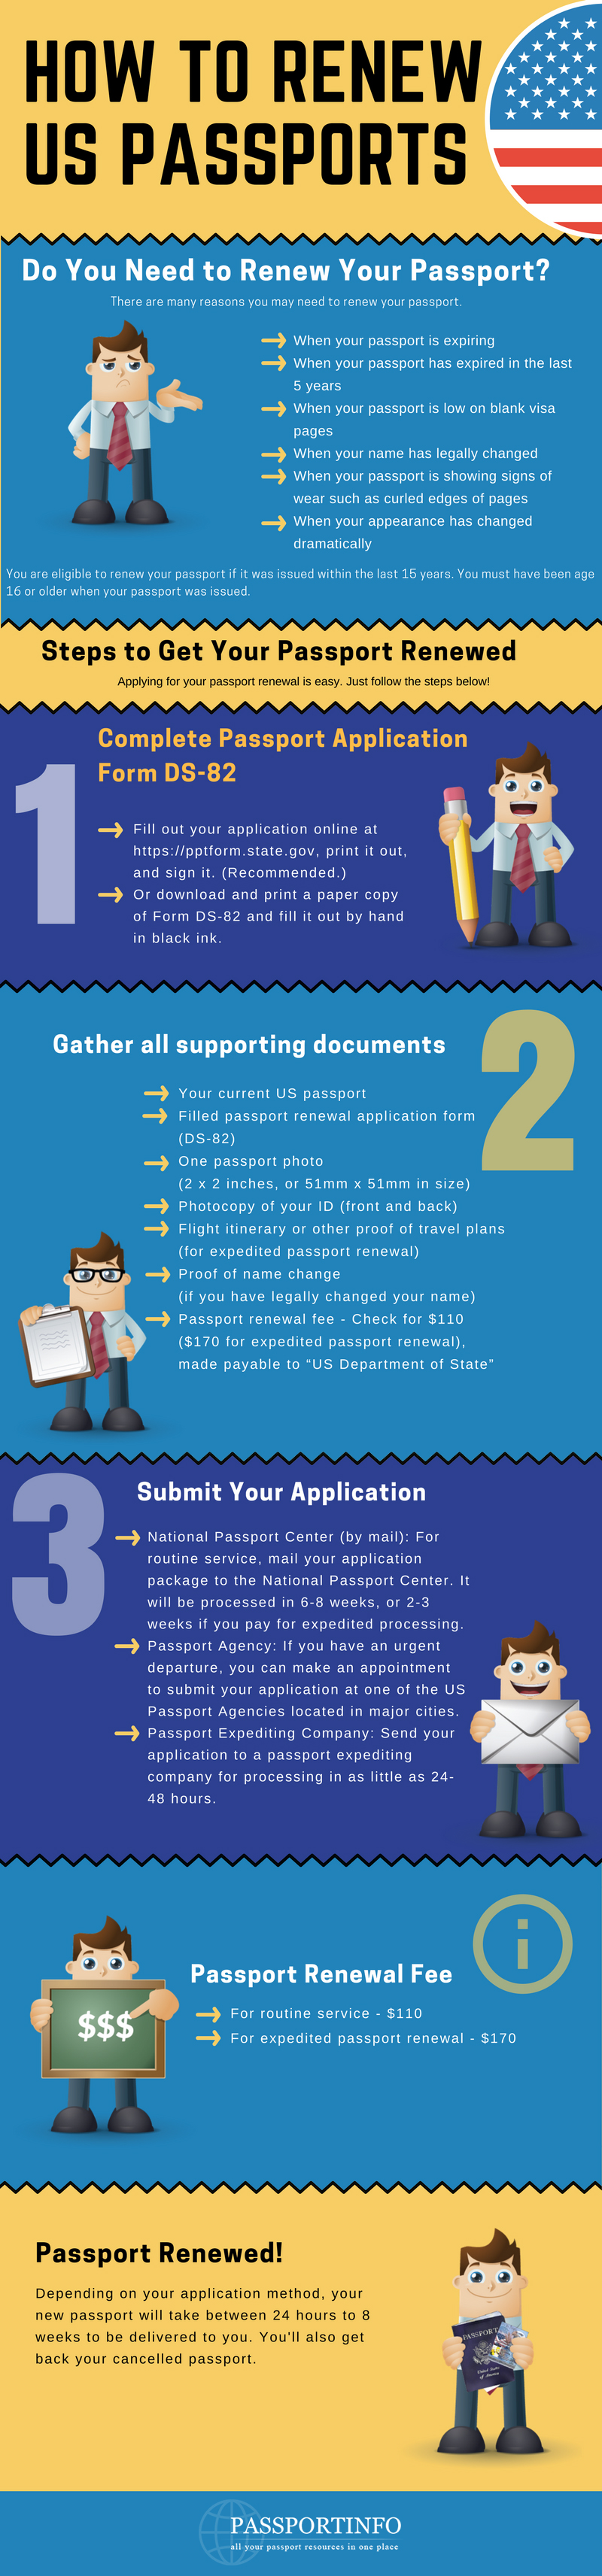 Step-by-step procedure to renew US passport